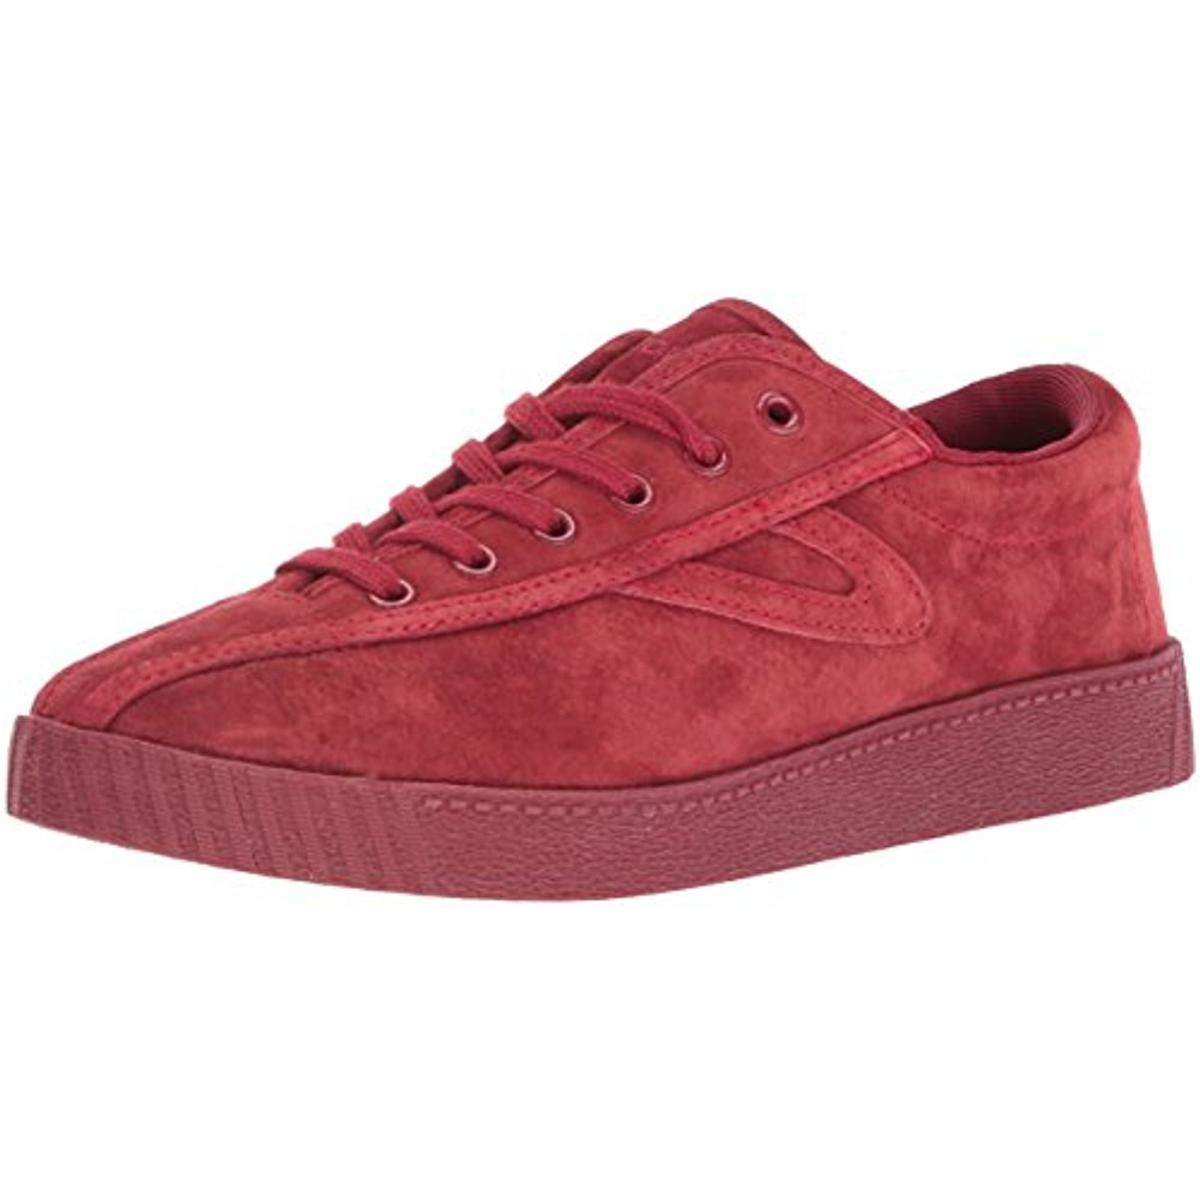 Tretorn Womens Nylite3 Suede Casual Fashion Sneakers by Tretorn